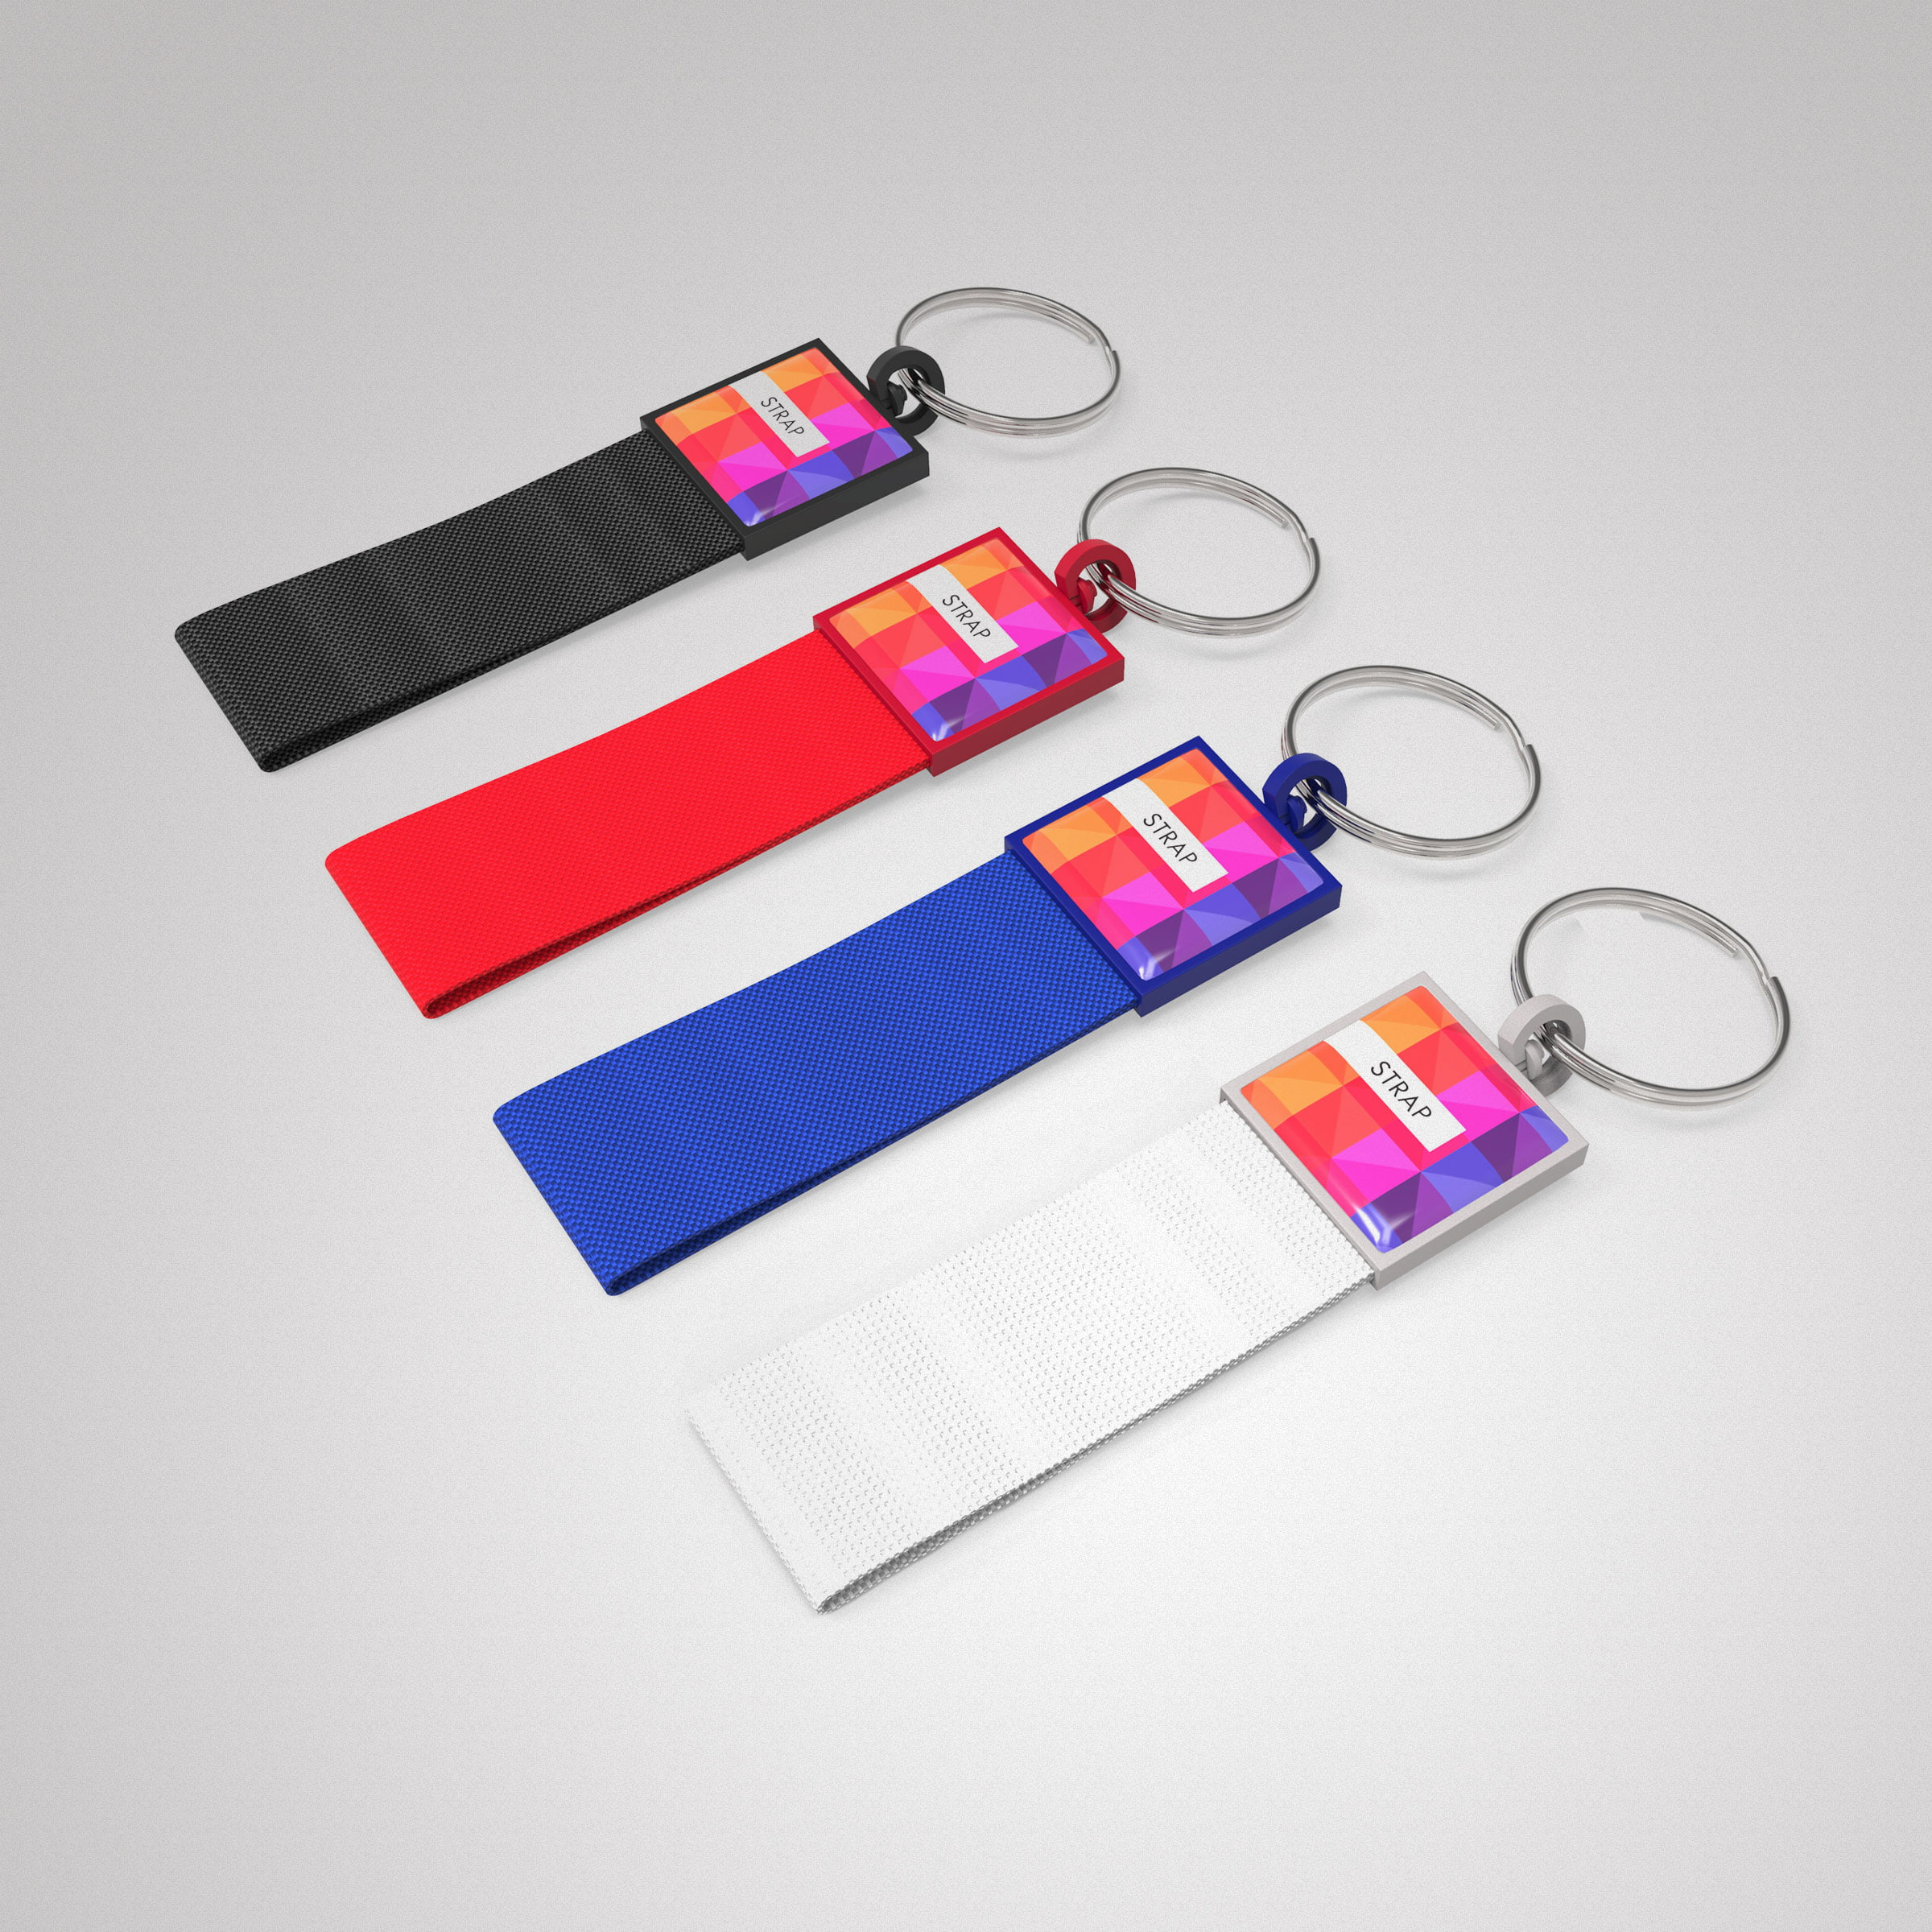 Key Ring Strap - Handy Key Ring Strap made in four colors